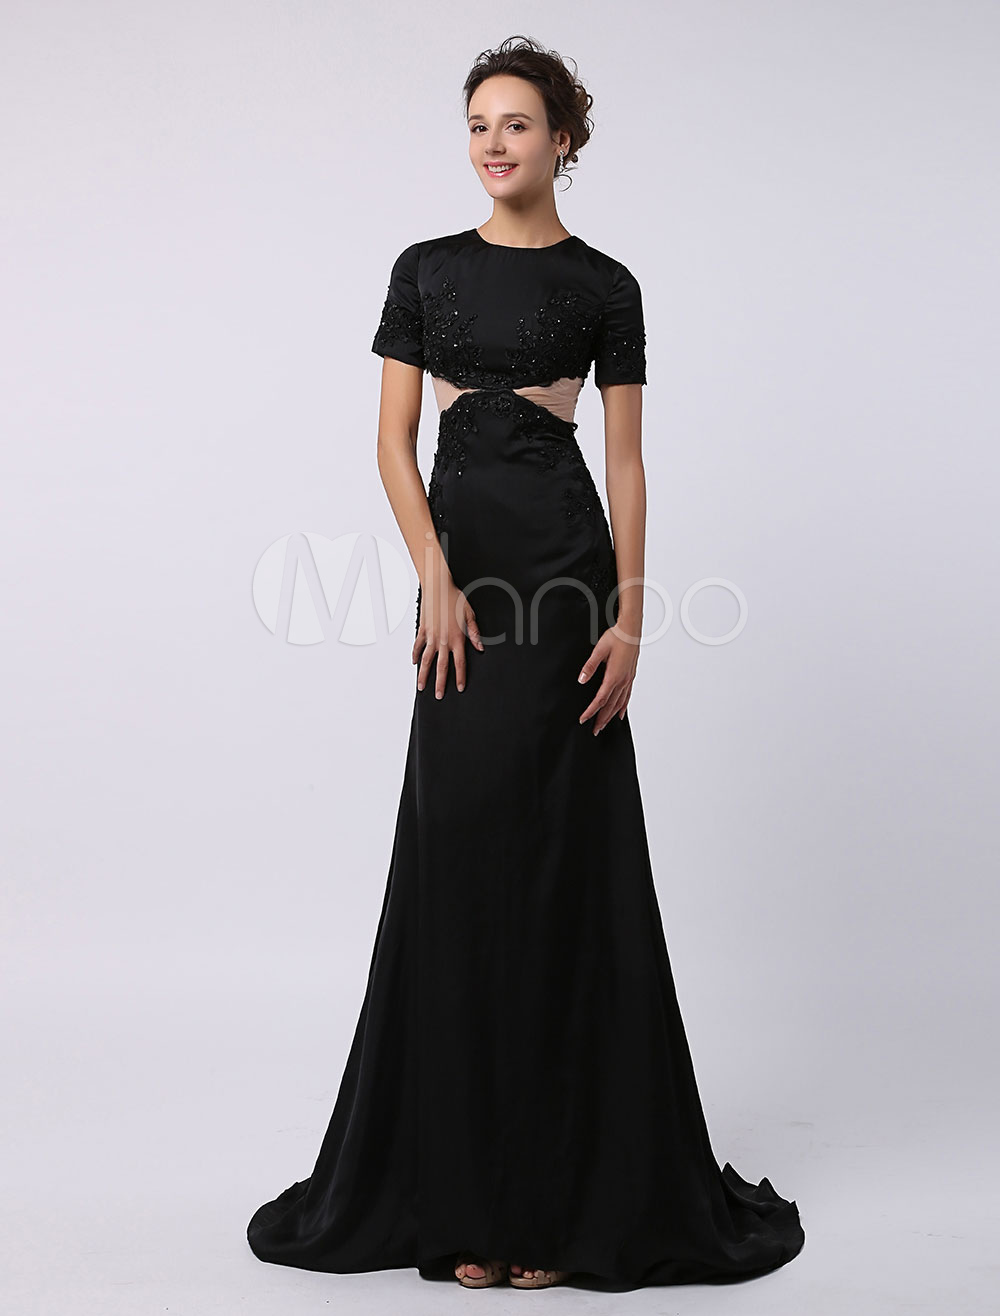 Black Lace Applique Dress with Cut Out at Waist and Chapel Train Milanoo